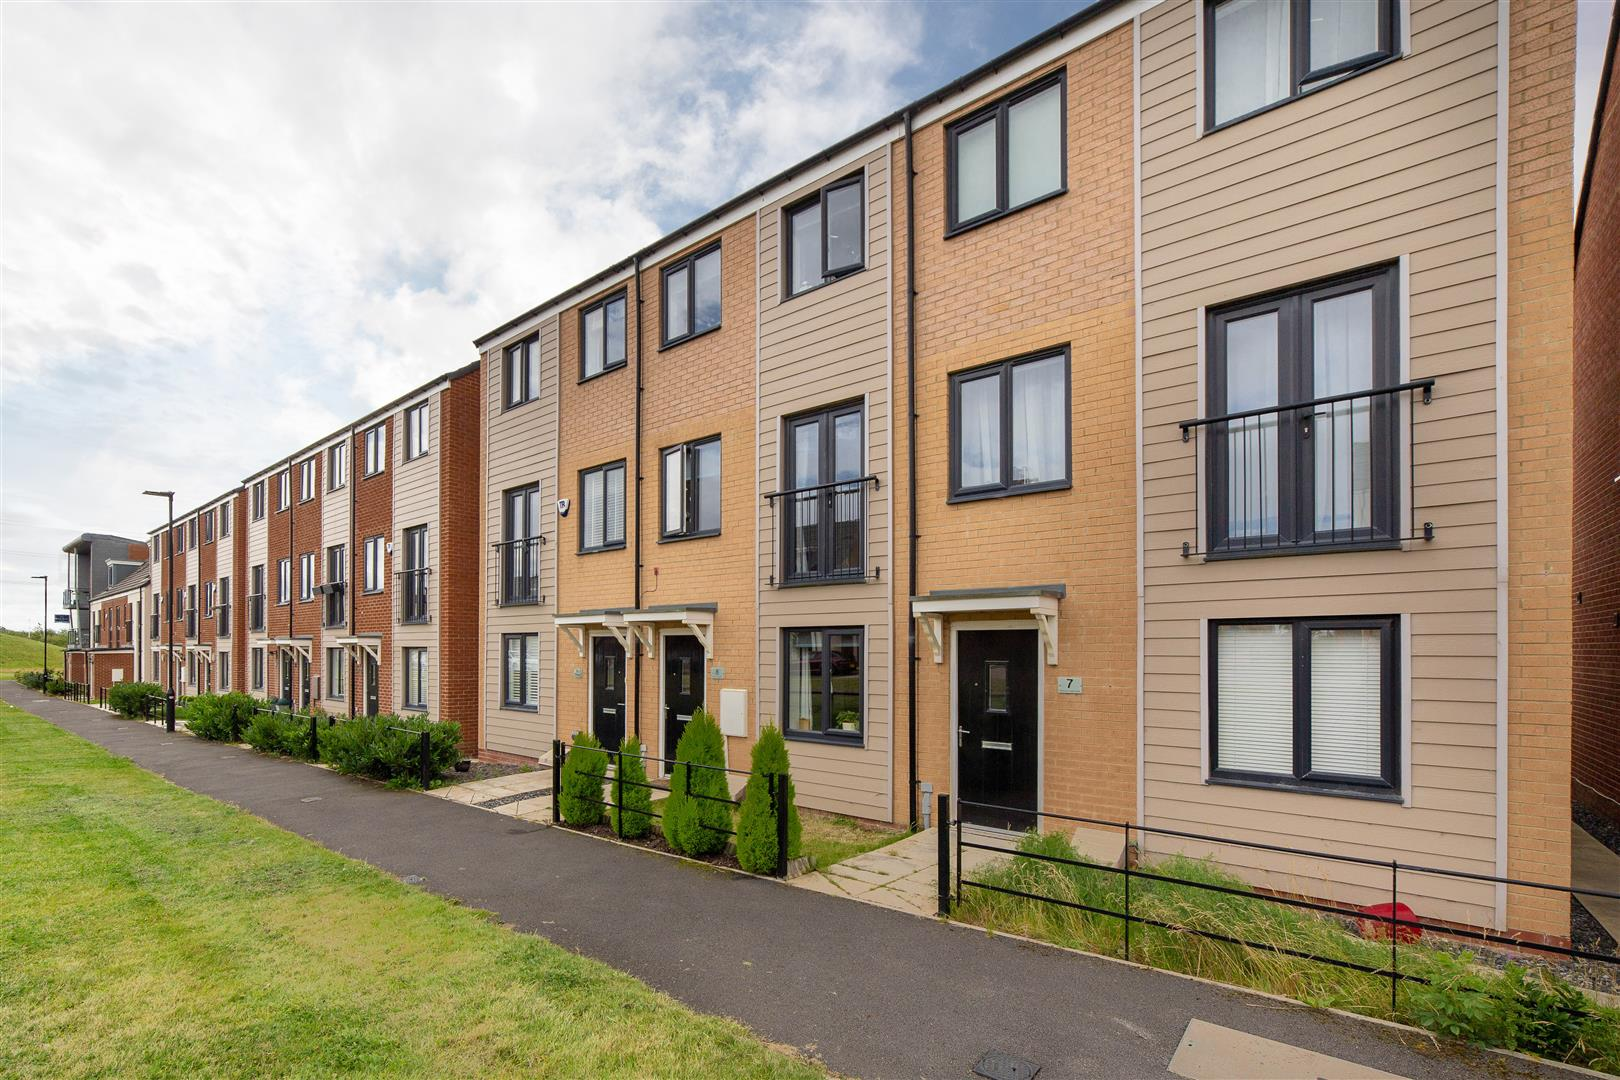 3 bed town house for sale in Newcastle Upon Tyne, NE13 9BP - Property Image 1